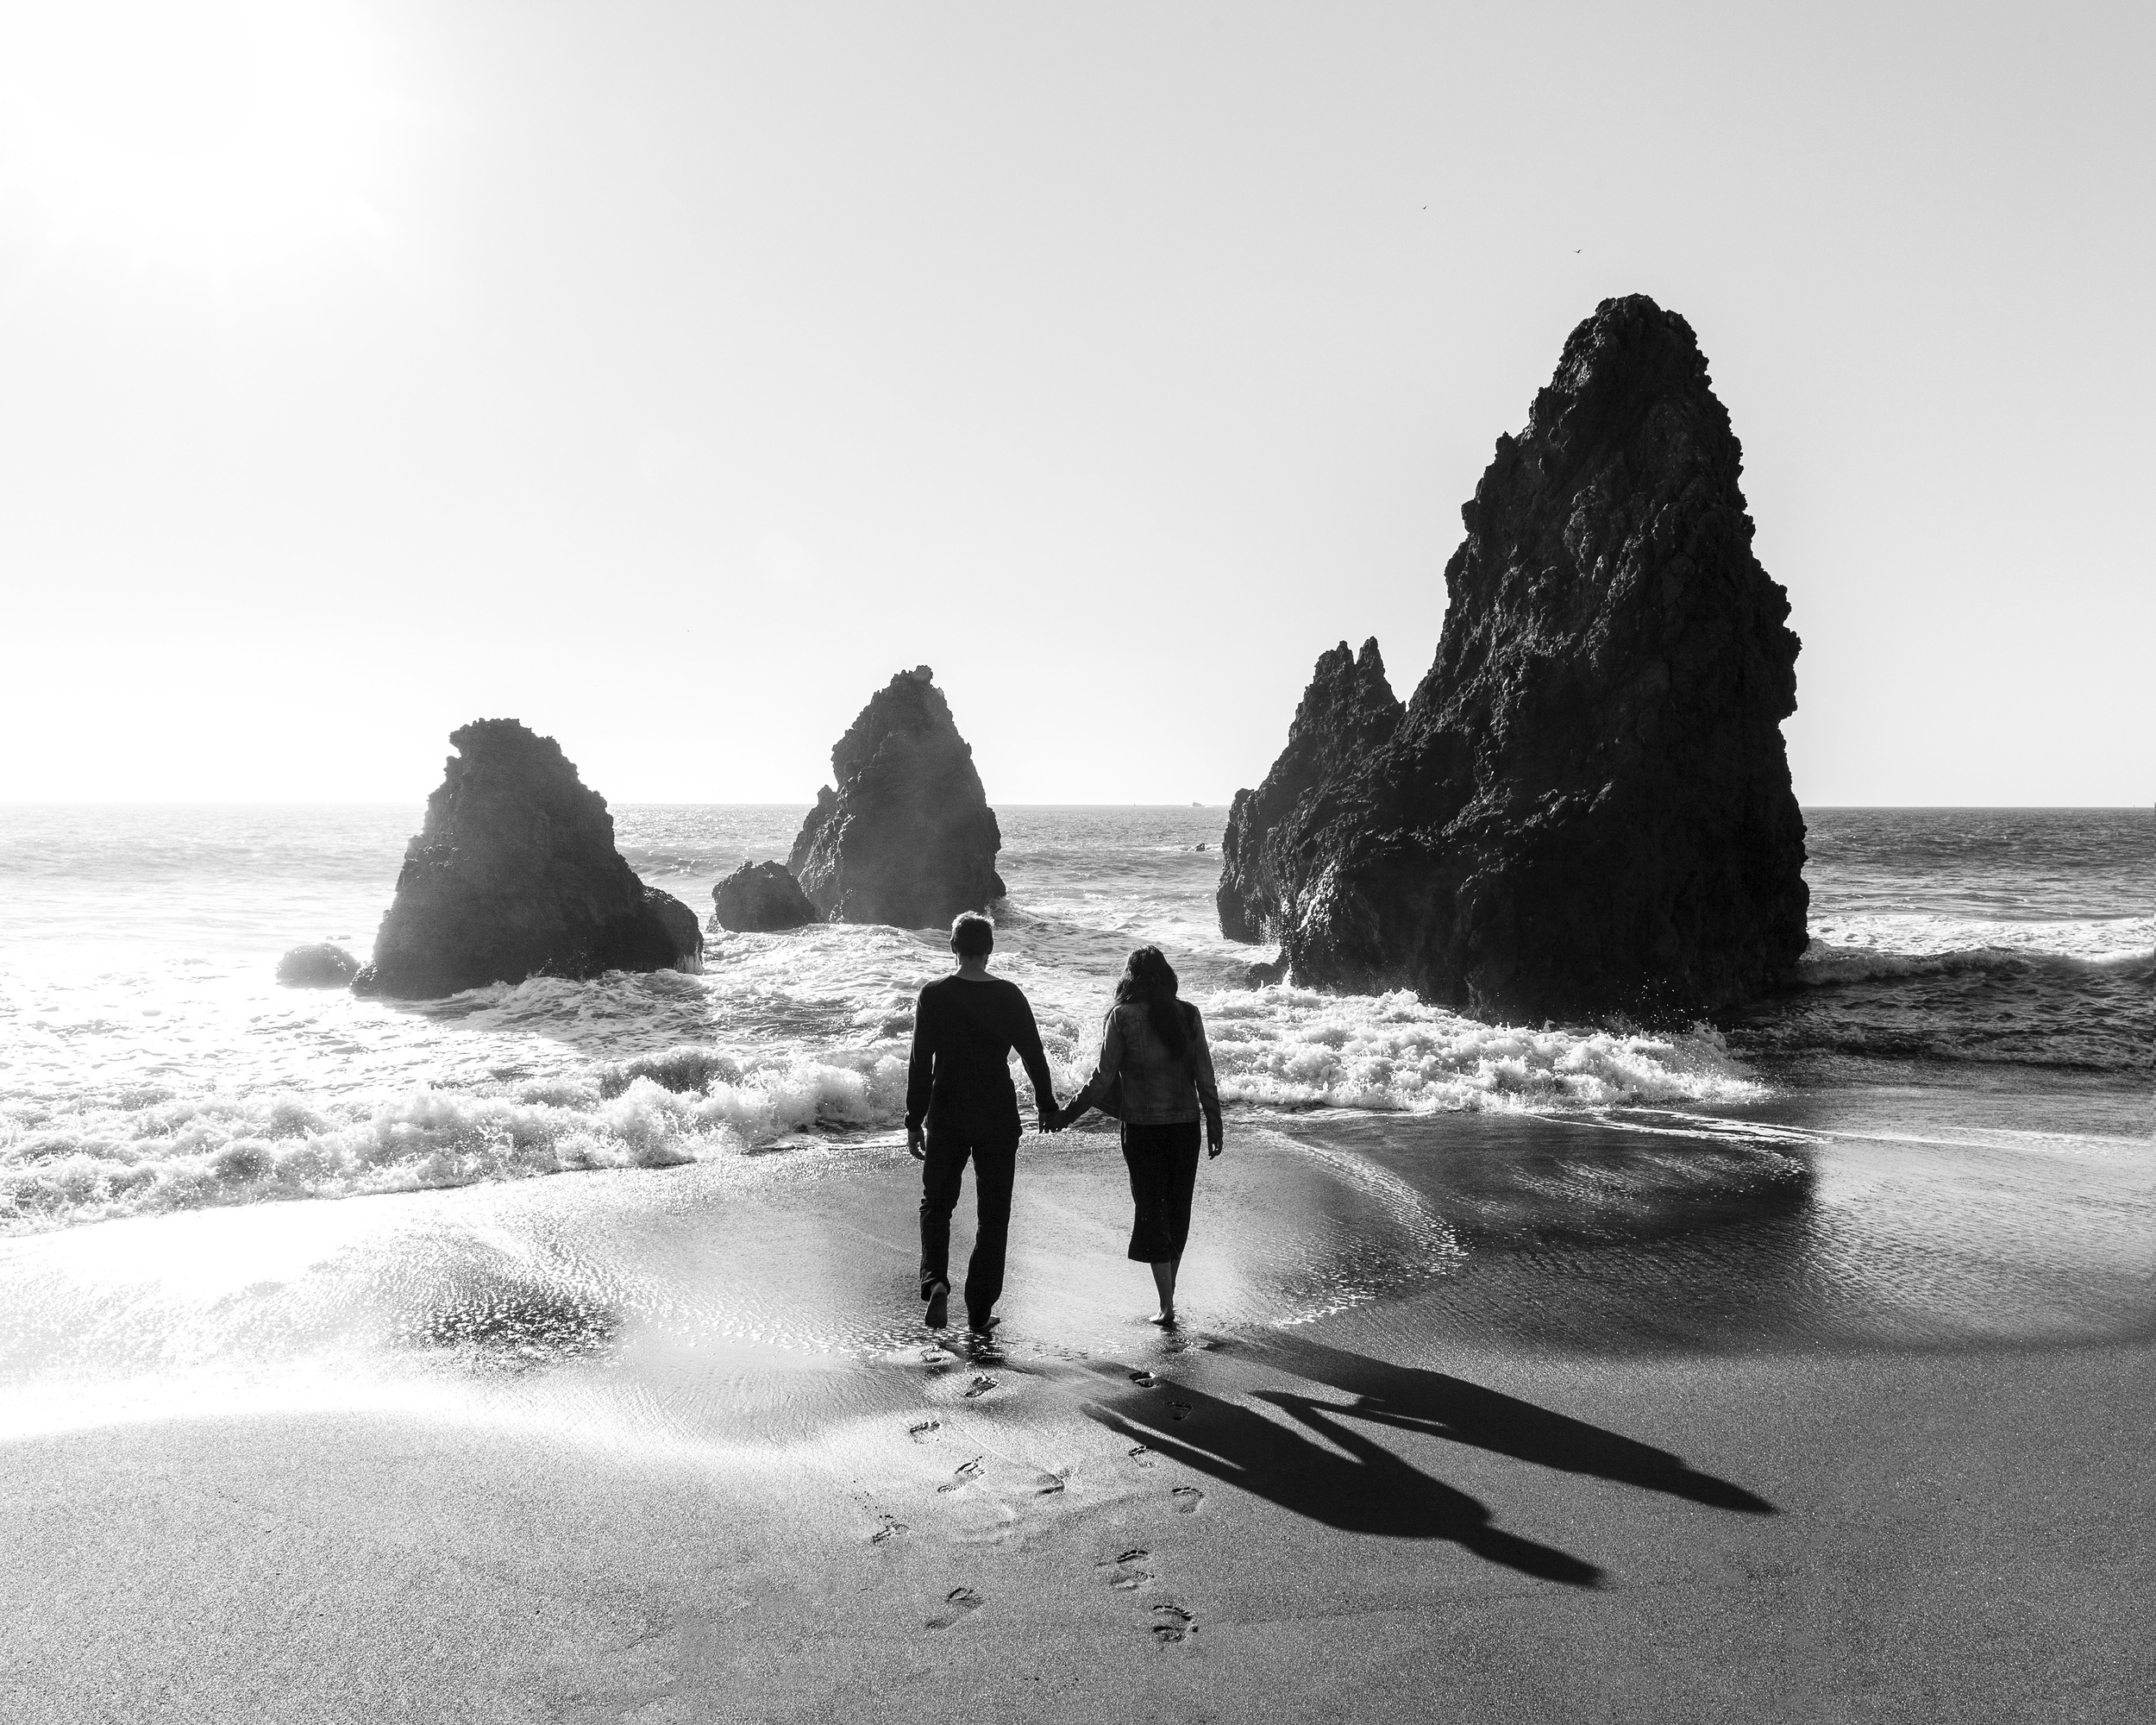 Best friends headed out to sea in between rocks at Rodeo Beach, California